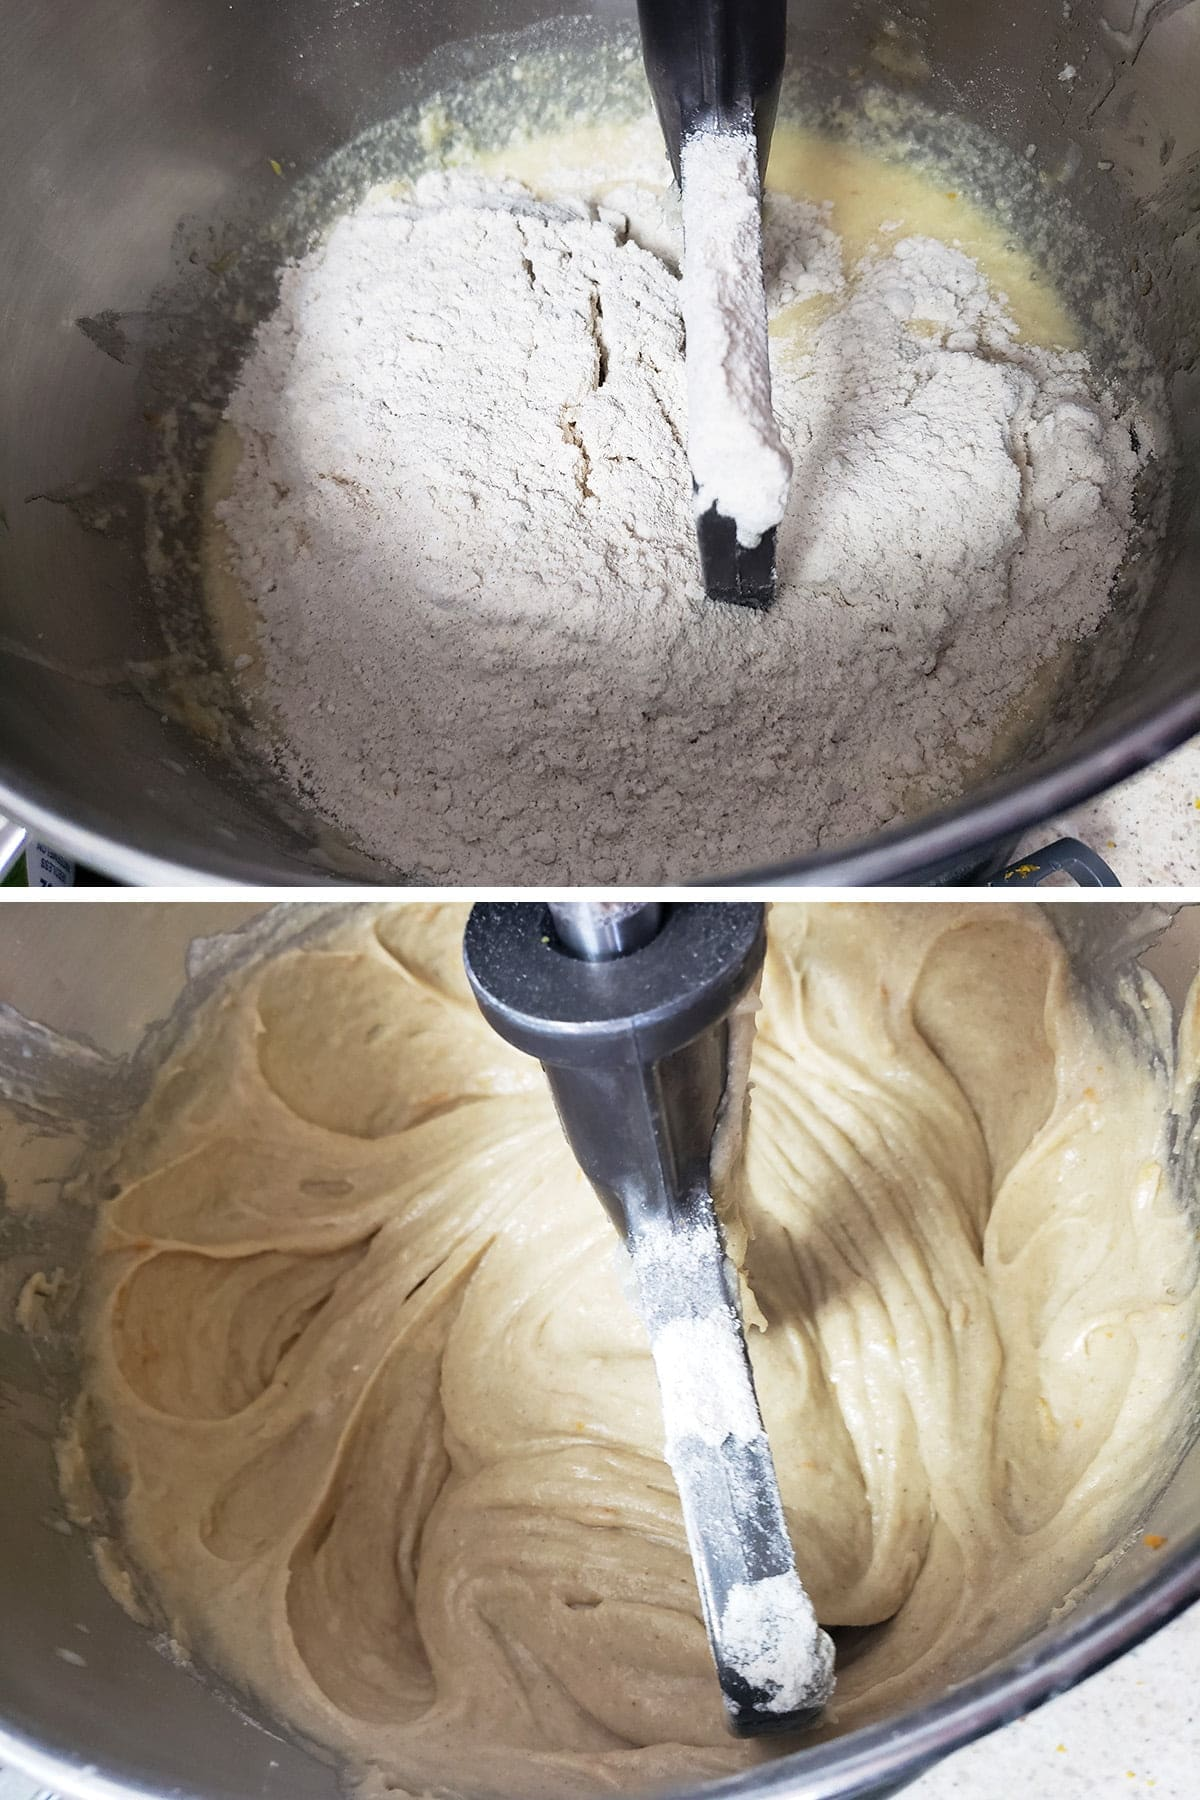 A two part compilation image showing flour being added the the batter, and the final batter after mixing.